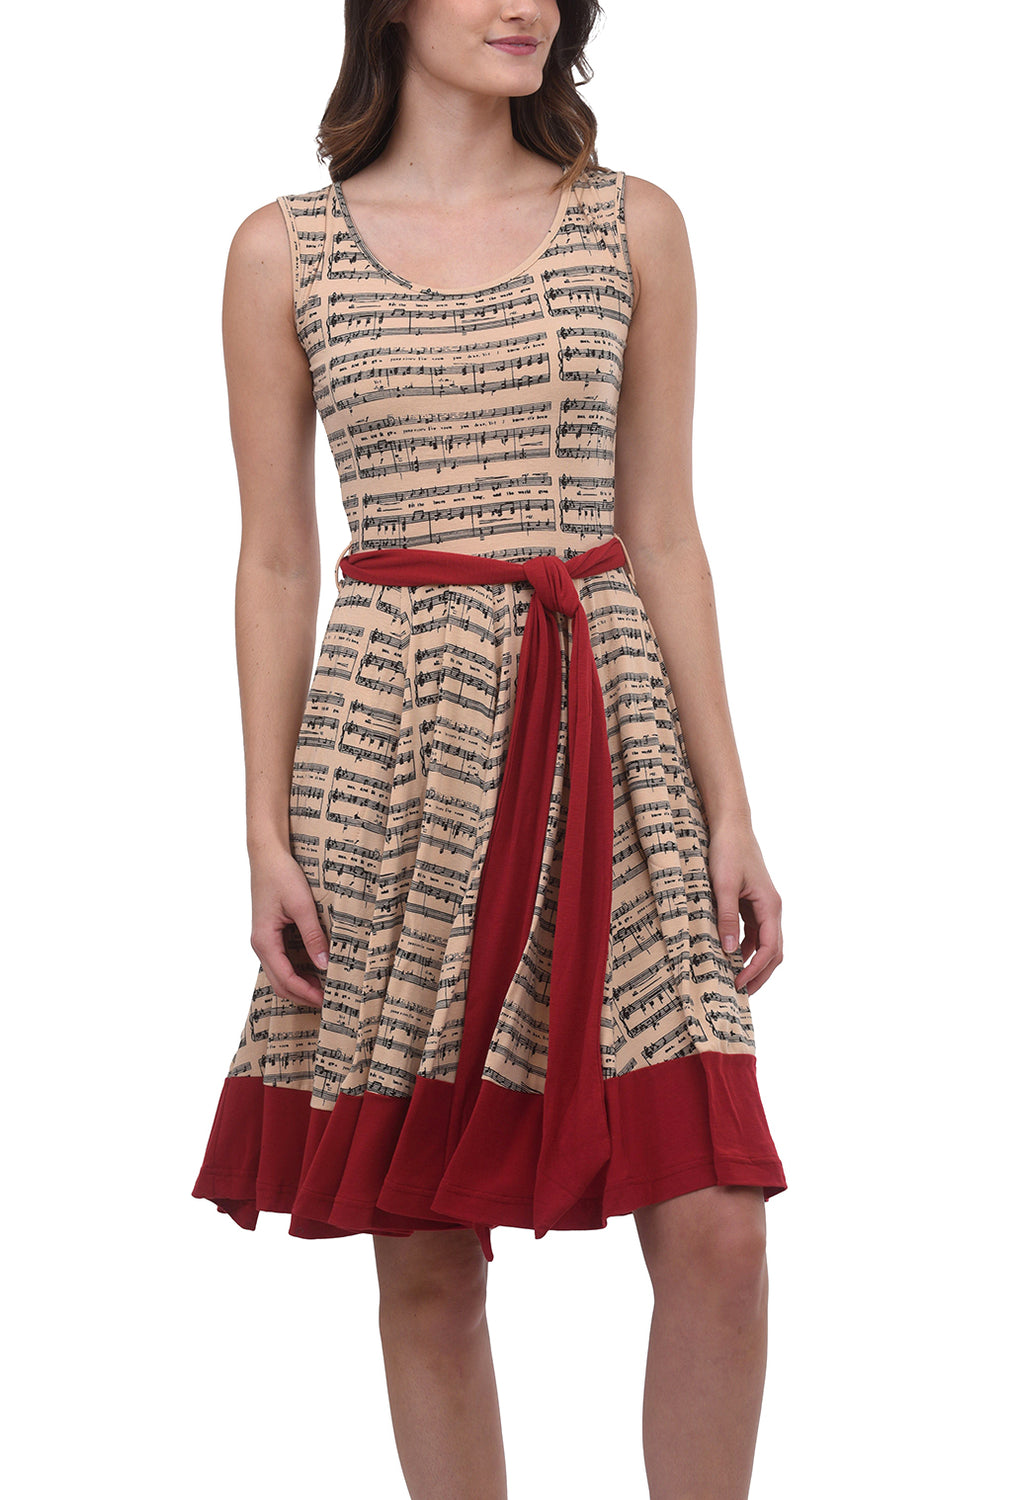 Mystic Symphony Dress, Khaki